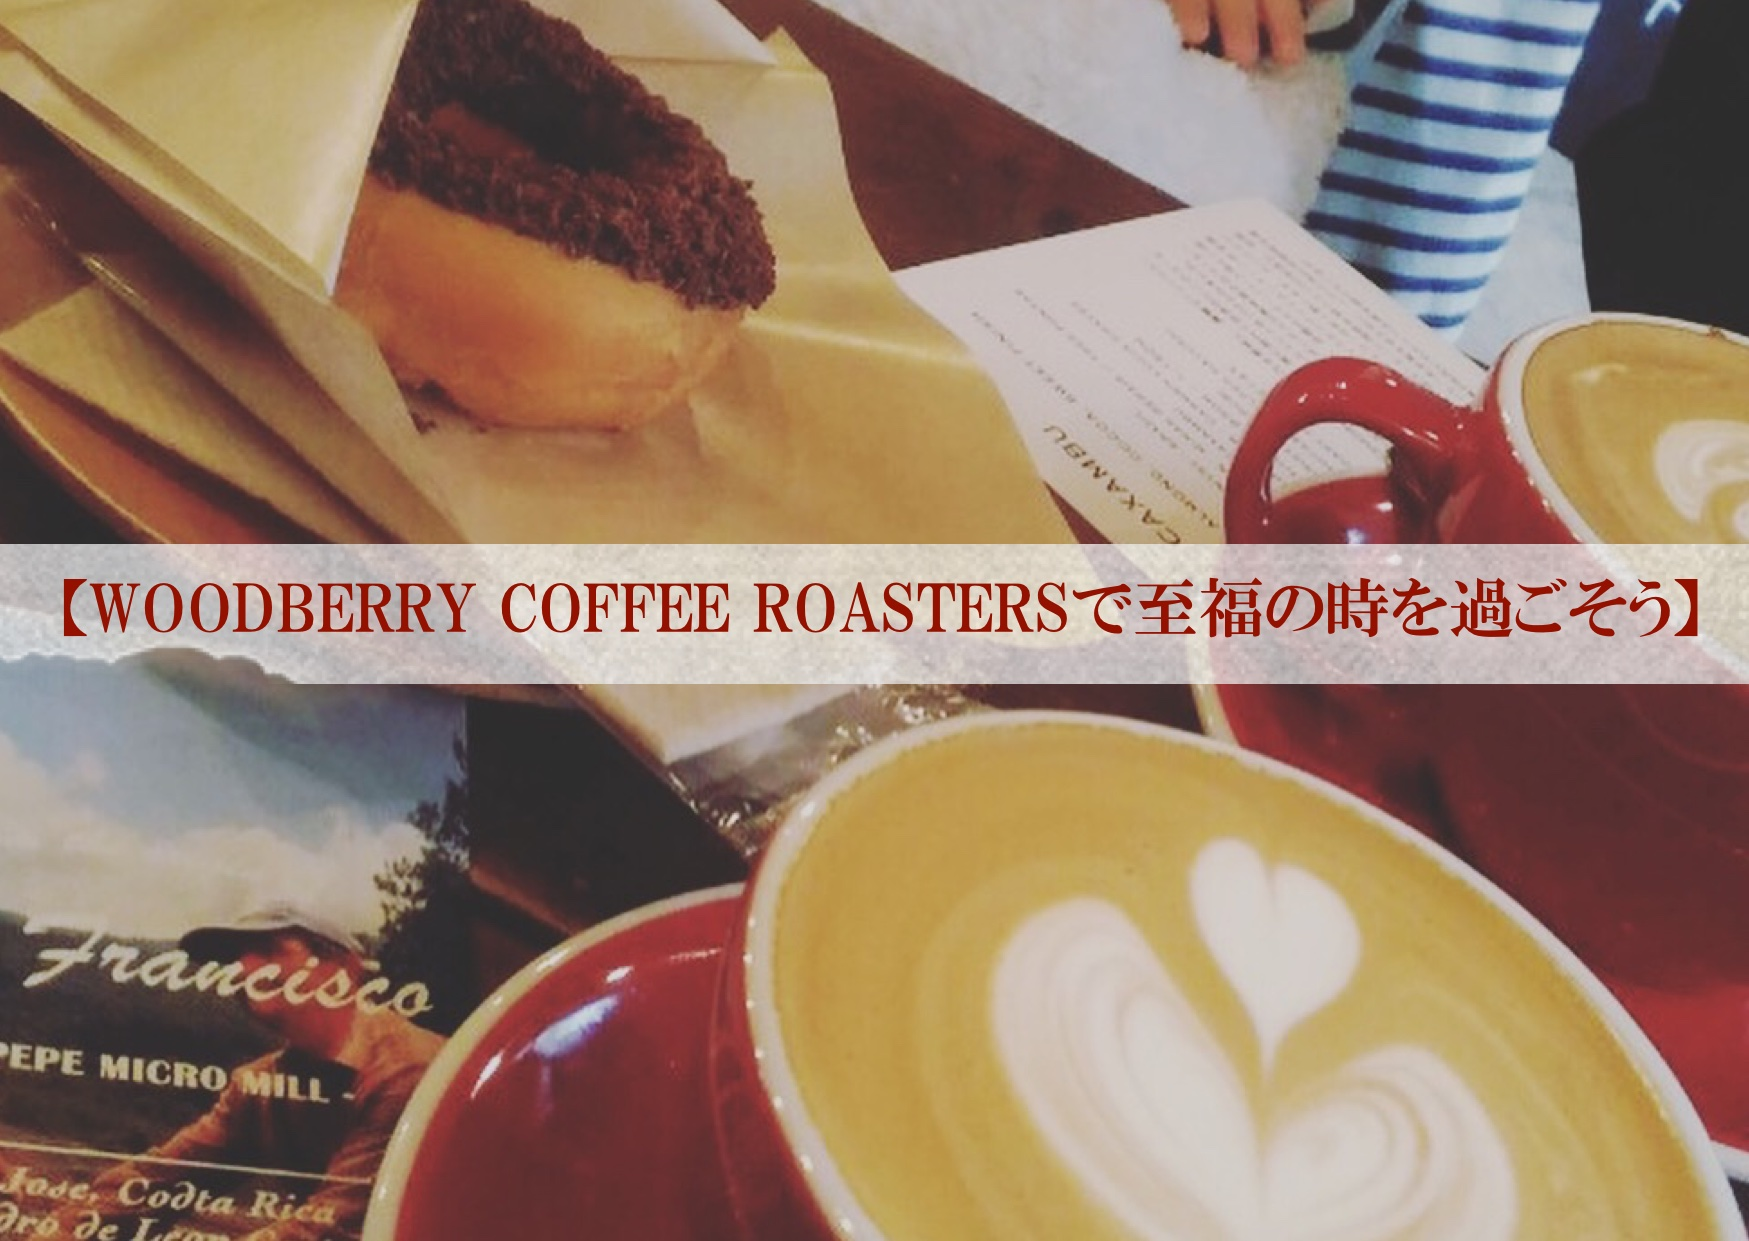 【WOODBERRY COFFEE ROASTERSで至福の時を過ごそう】